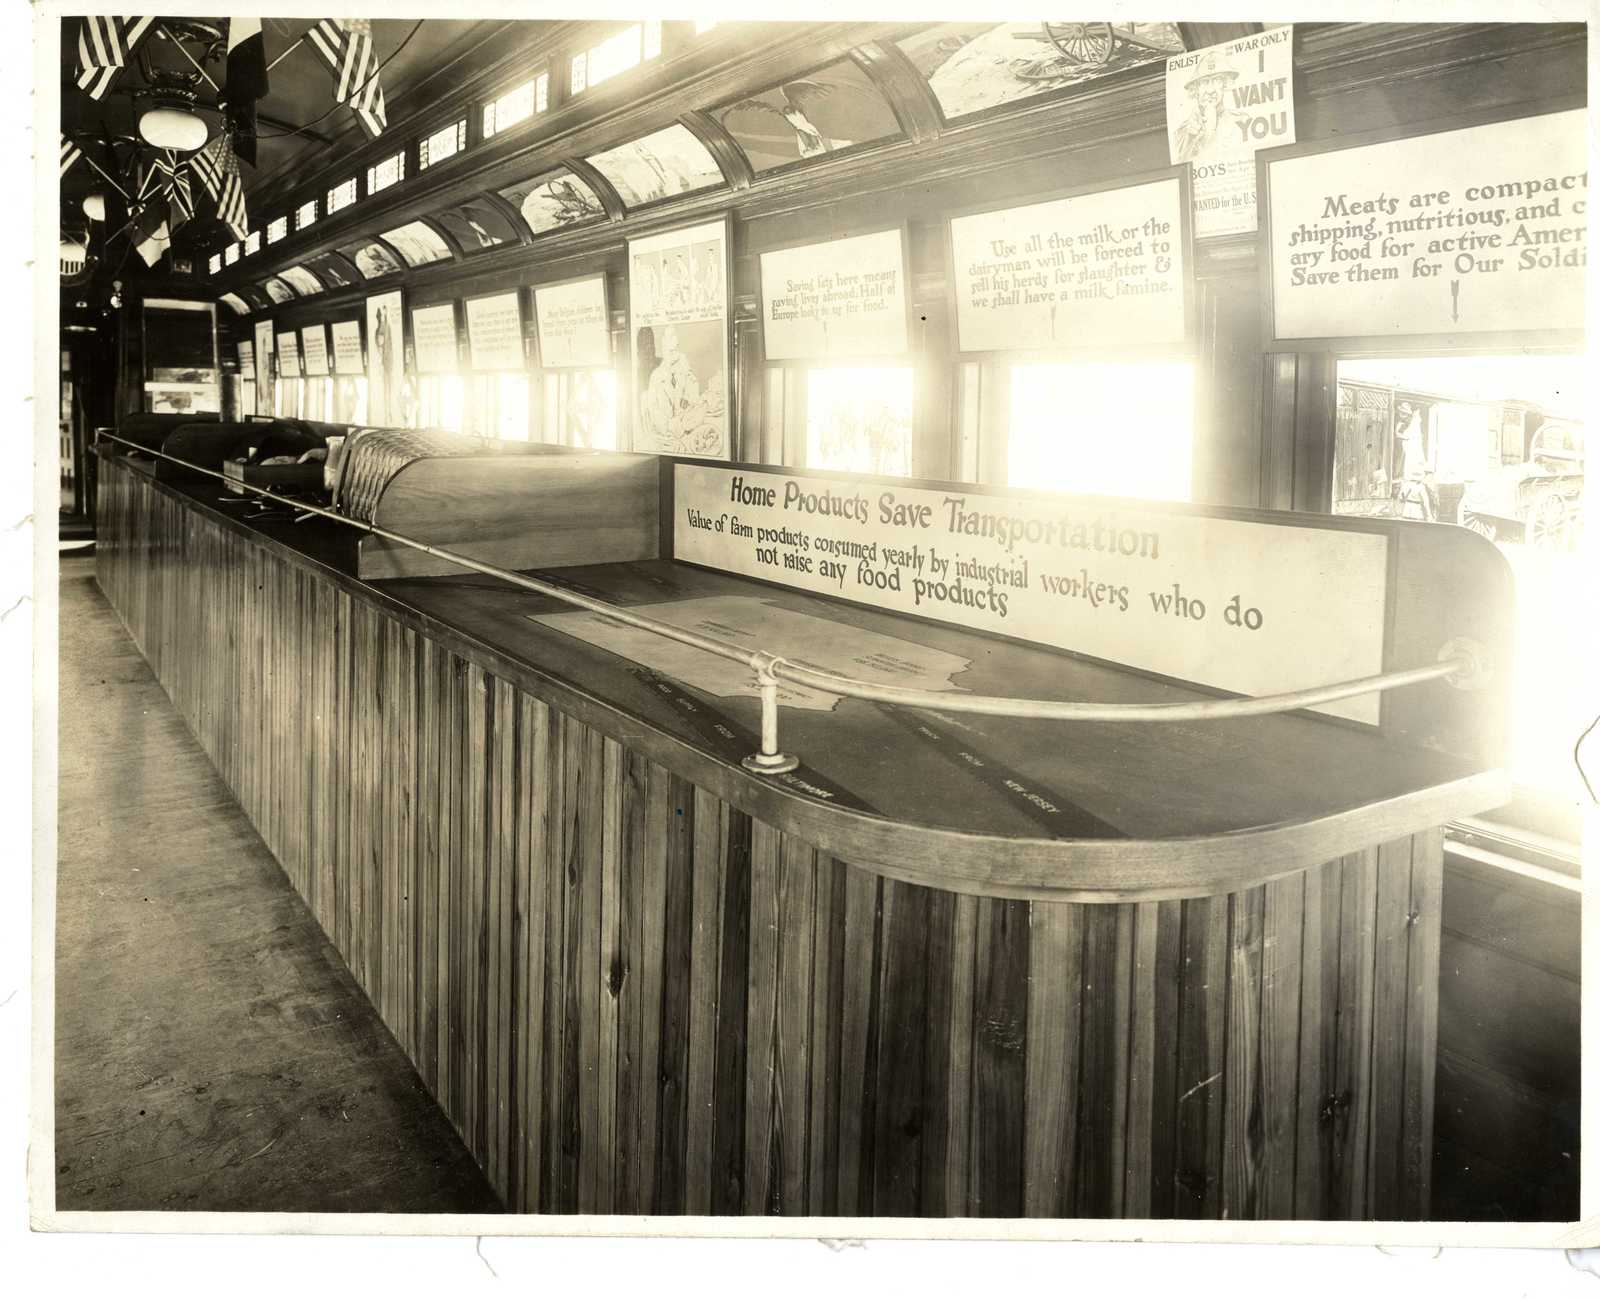 Photograph of Pennsylvania Food Conservation Train Exhibit on Buying Home Products to Save Fuel